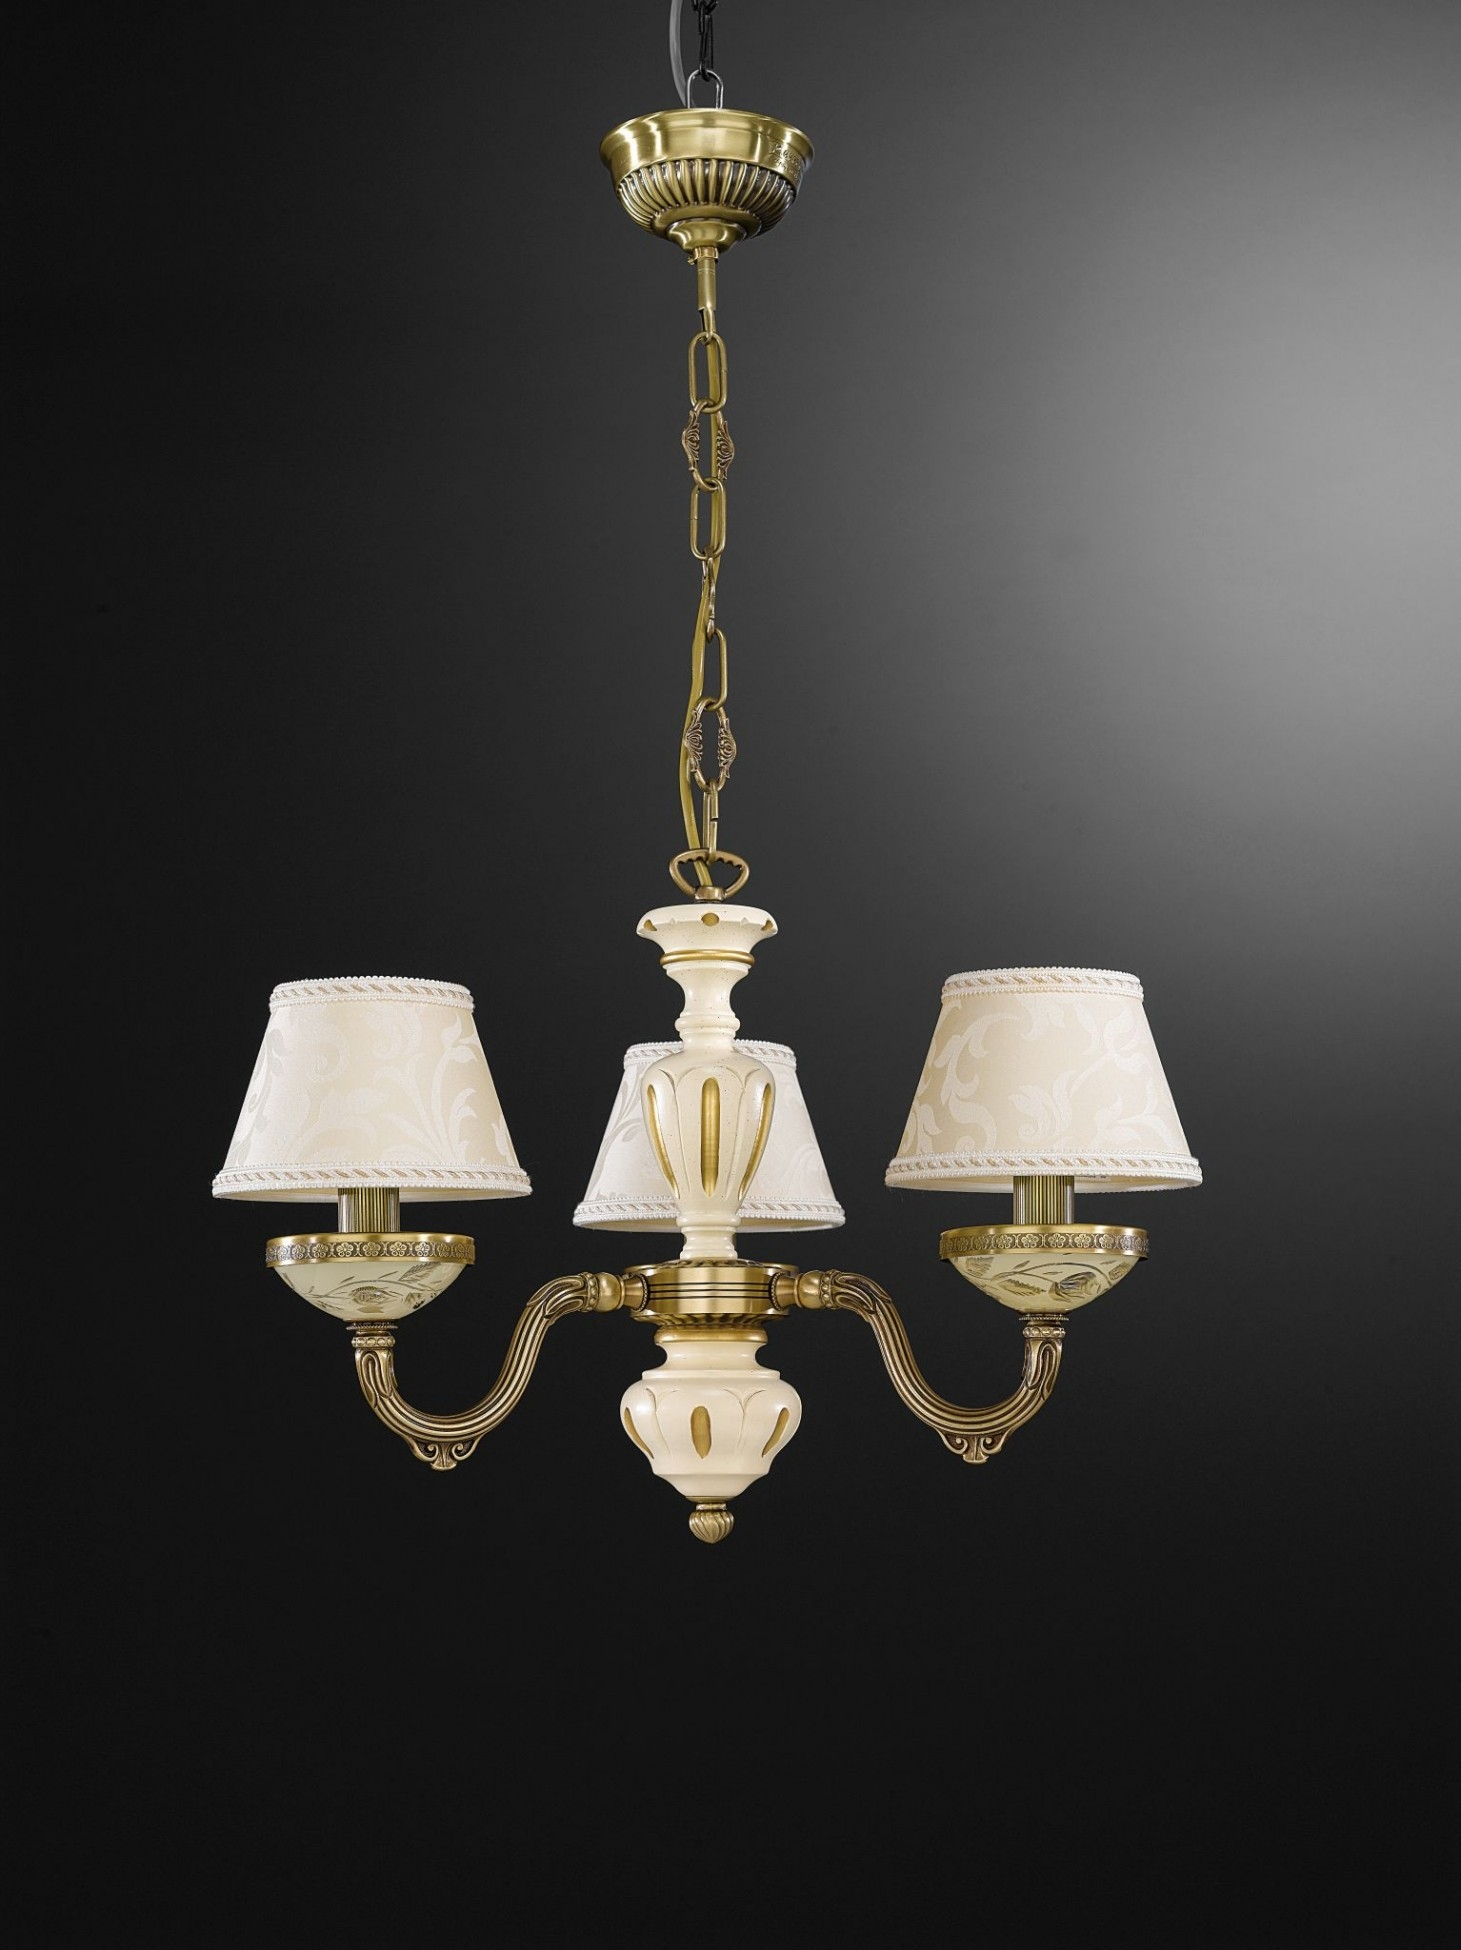 3 Lights Brass Wood And Cream Glass Chandelier With Lamp Shades With Regard To Cream Chandelier Lights (Image 1 of 15)